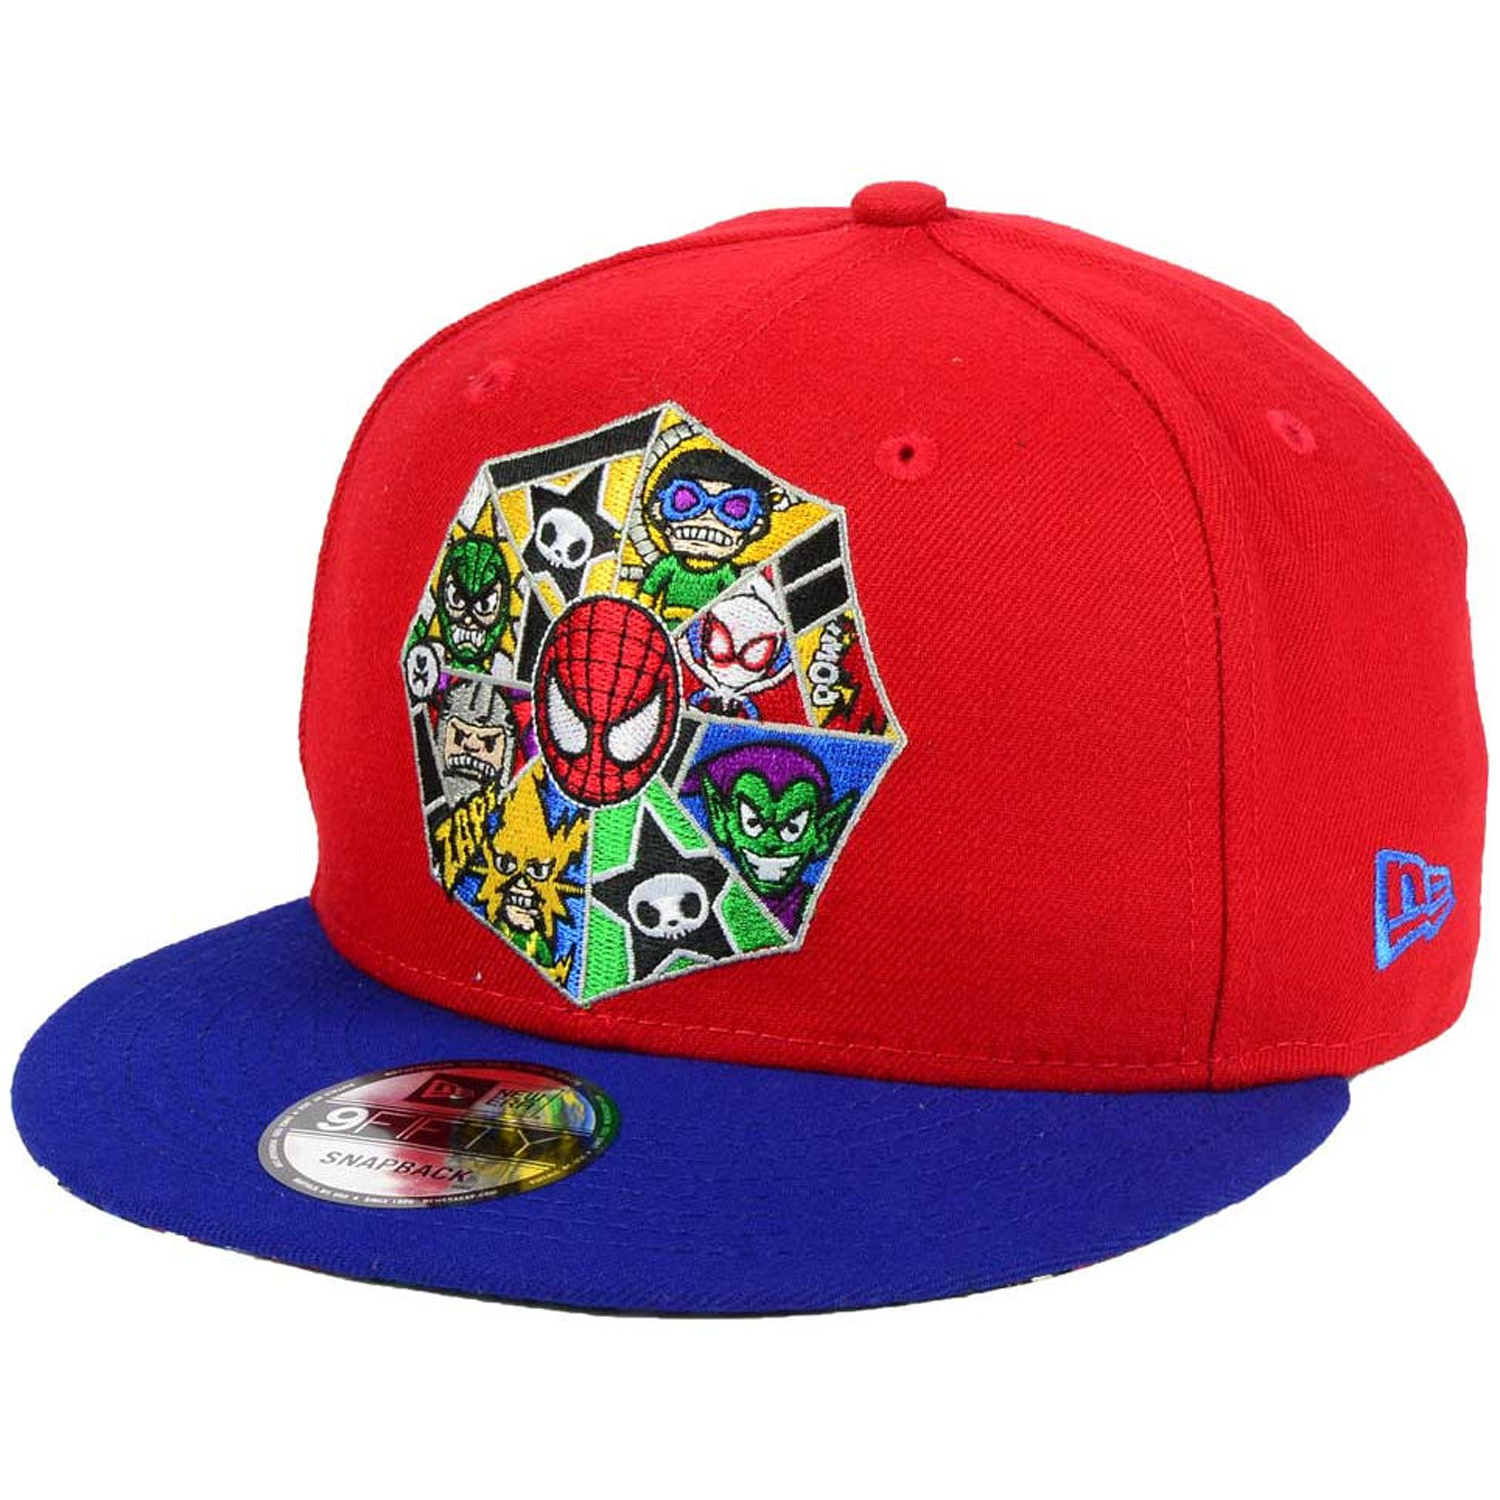 07c56f358a7 Details about Tokidoki Marvel New Era Spider-Man Spidey Character Web  9Fifty Snapback Cap Hat